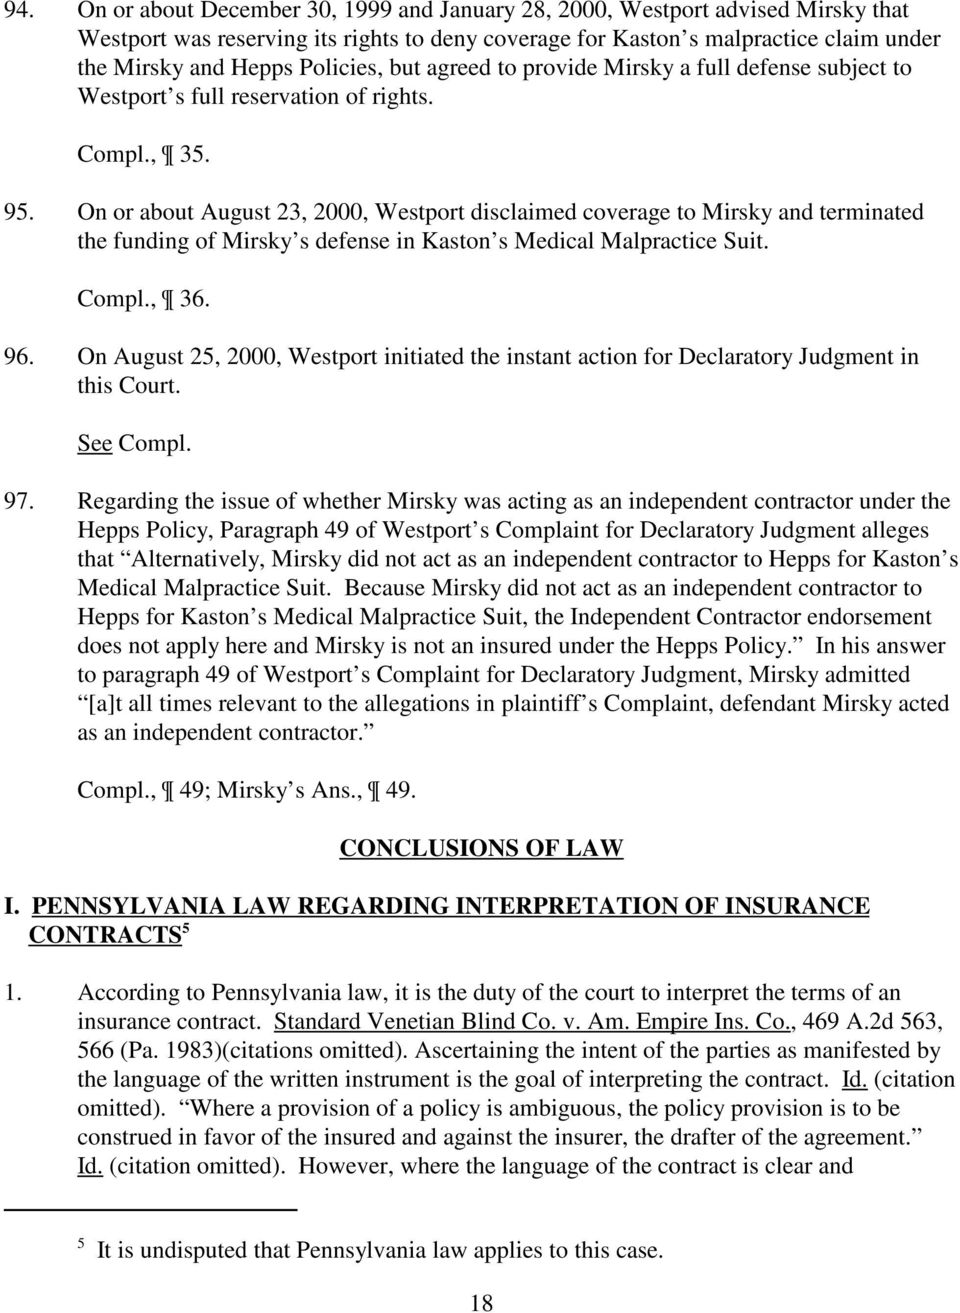 On or about August 23, 2000, Westport disclaimed coverage to Mirsky and terminated the funding of Mirsky s defense in Kaston s Medical Malpractice Suit. Compl., 36. 96.